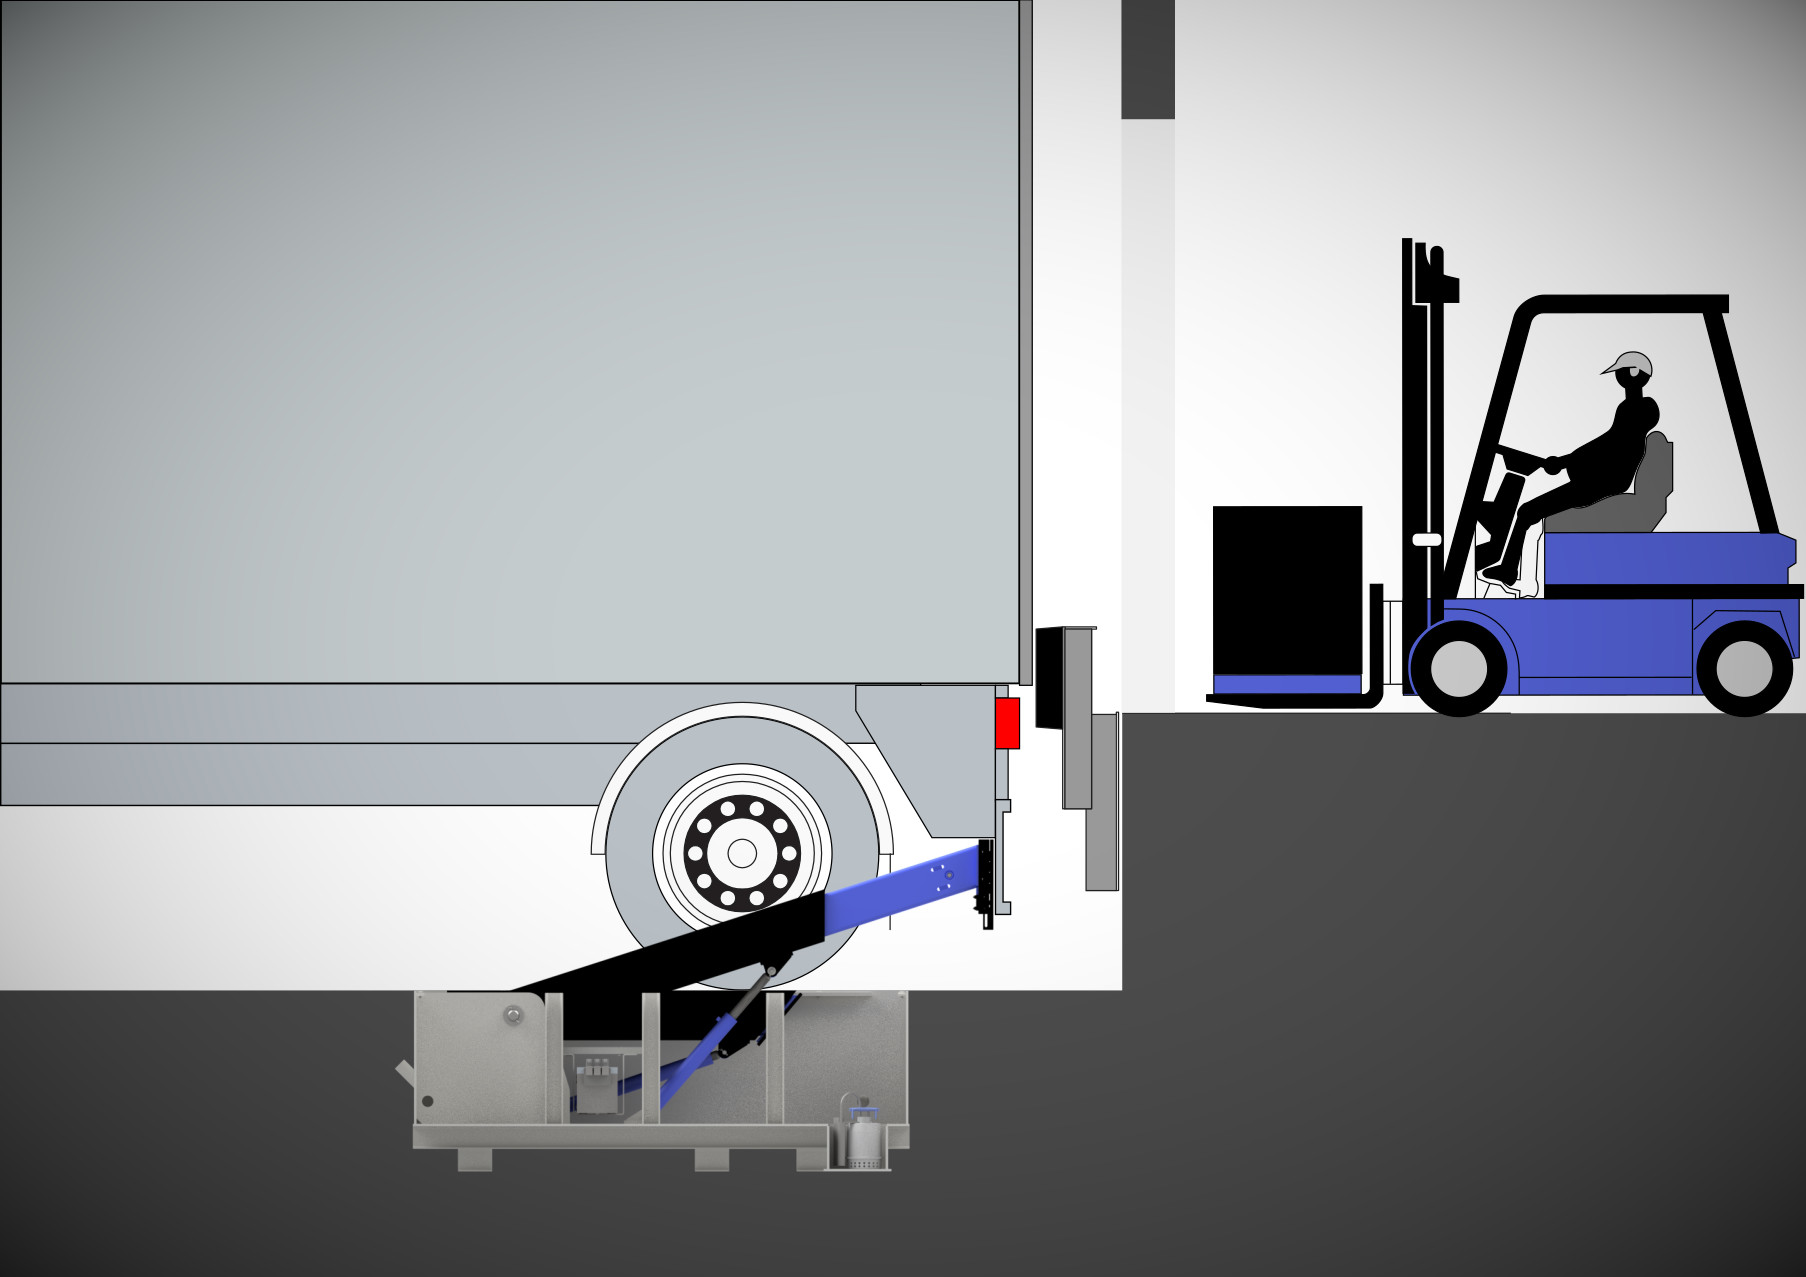 BLOCKDOCK-V1 for truck loading, block arm lifts on the underrun protection bar